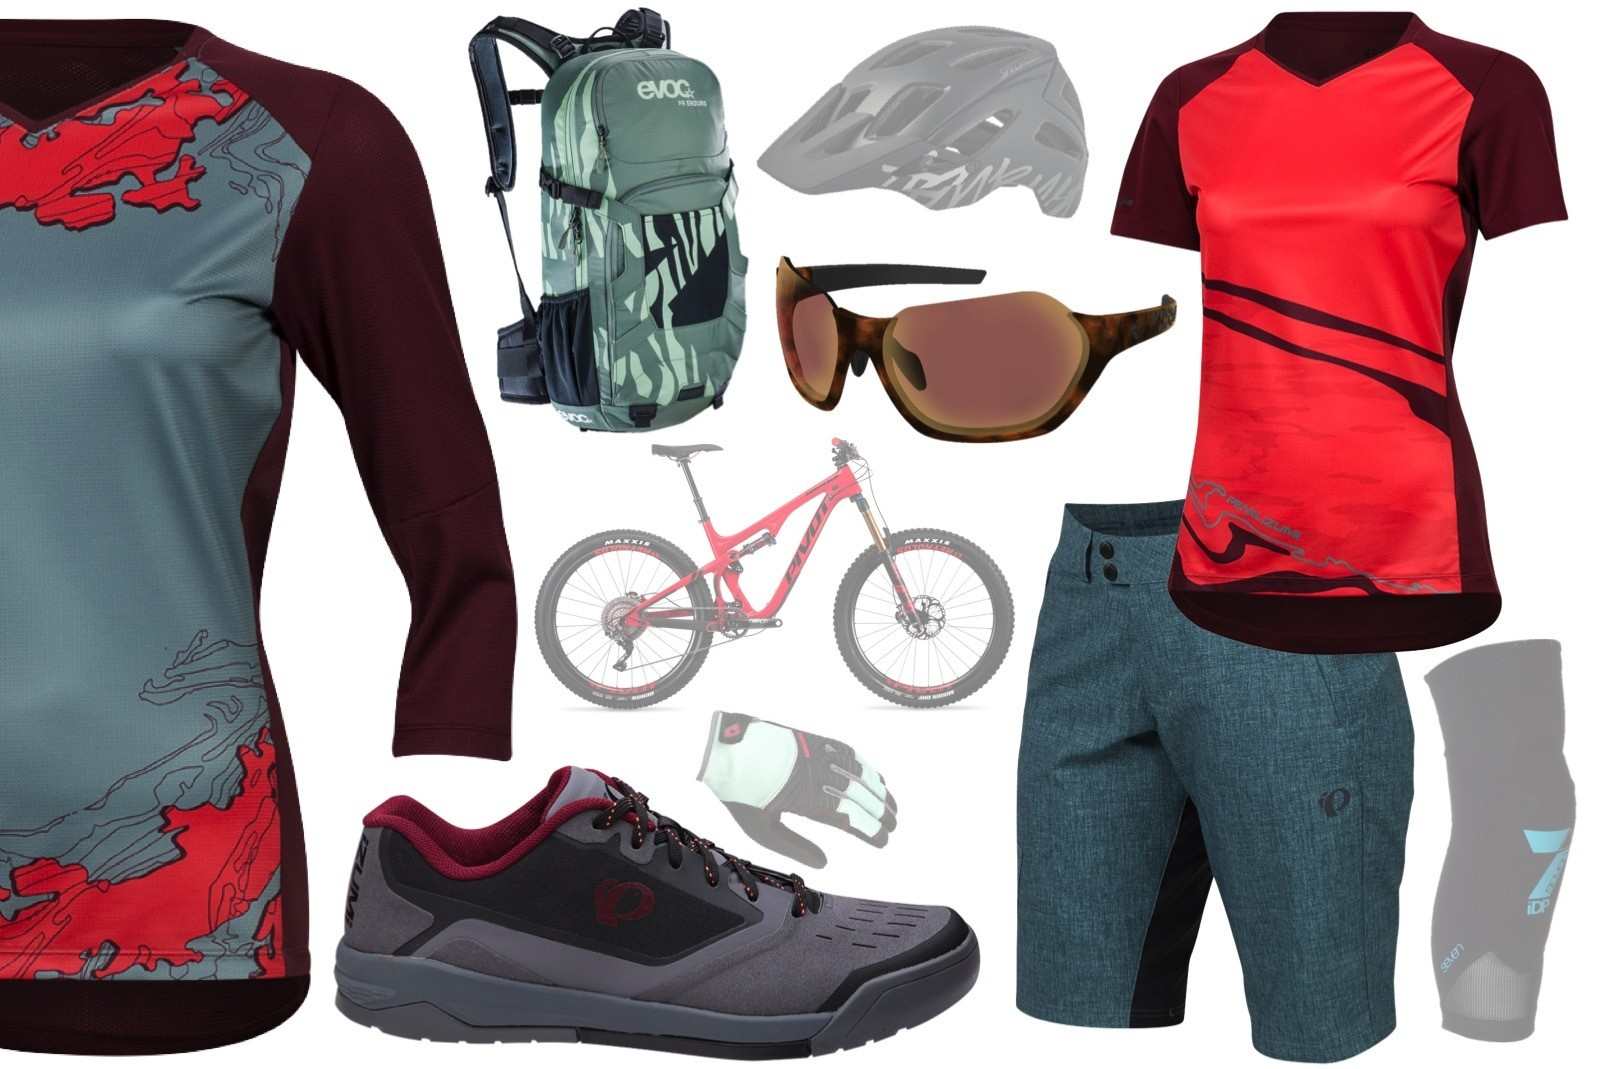 5c0a1e9644 Eight Head-to-Toe Looks for Mountain Biking Ladies - Mountain Bikes ...